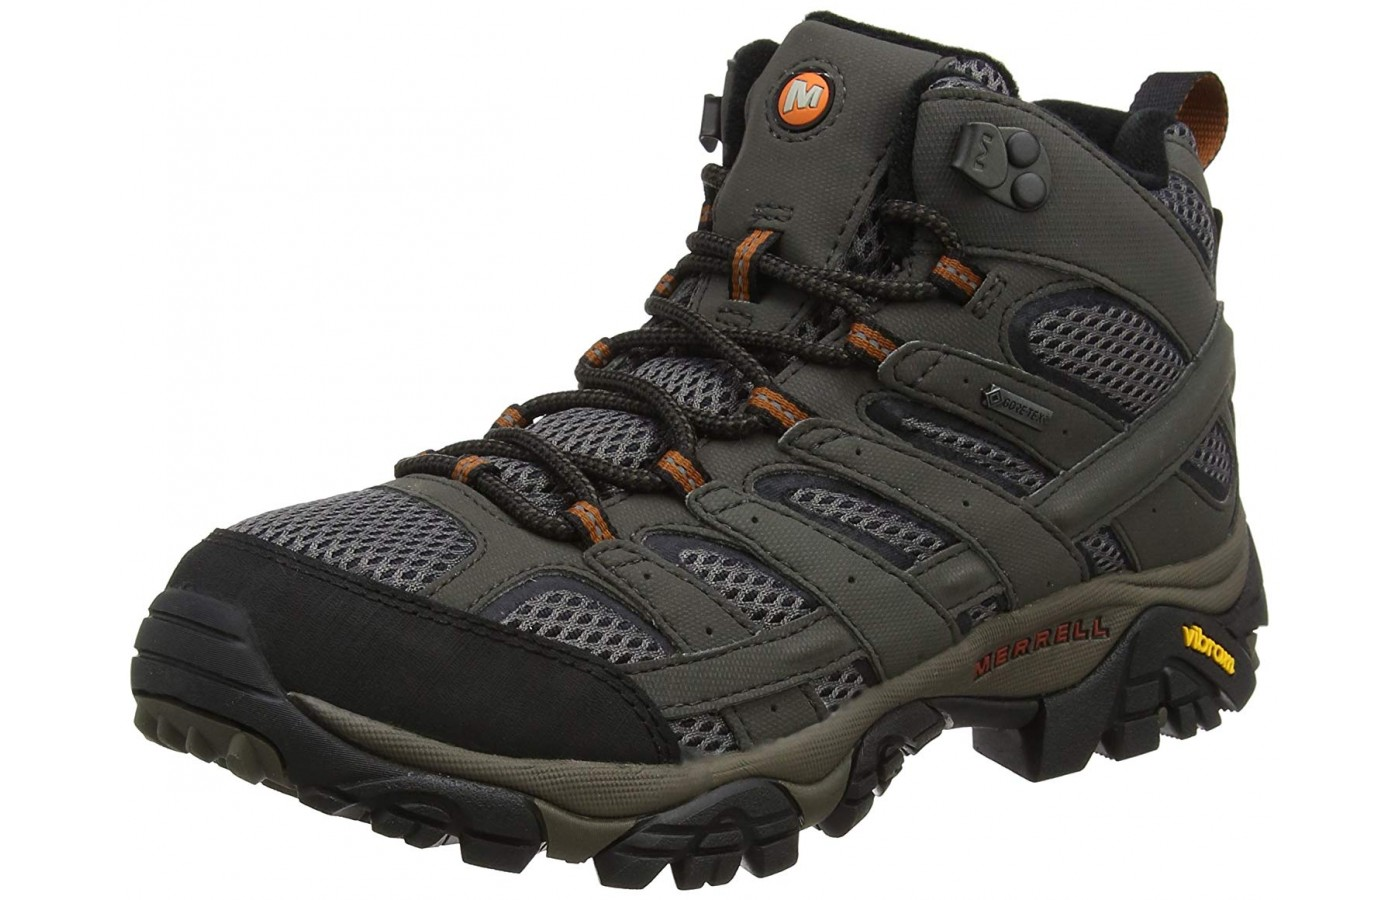 Moab's mid high boots cover enough to offer protection without becoming too restrictive.